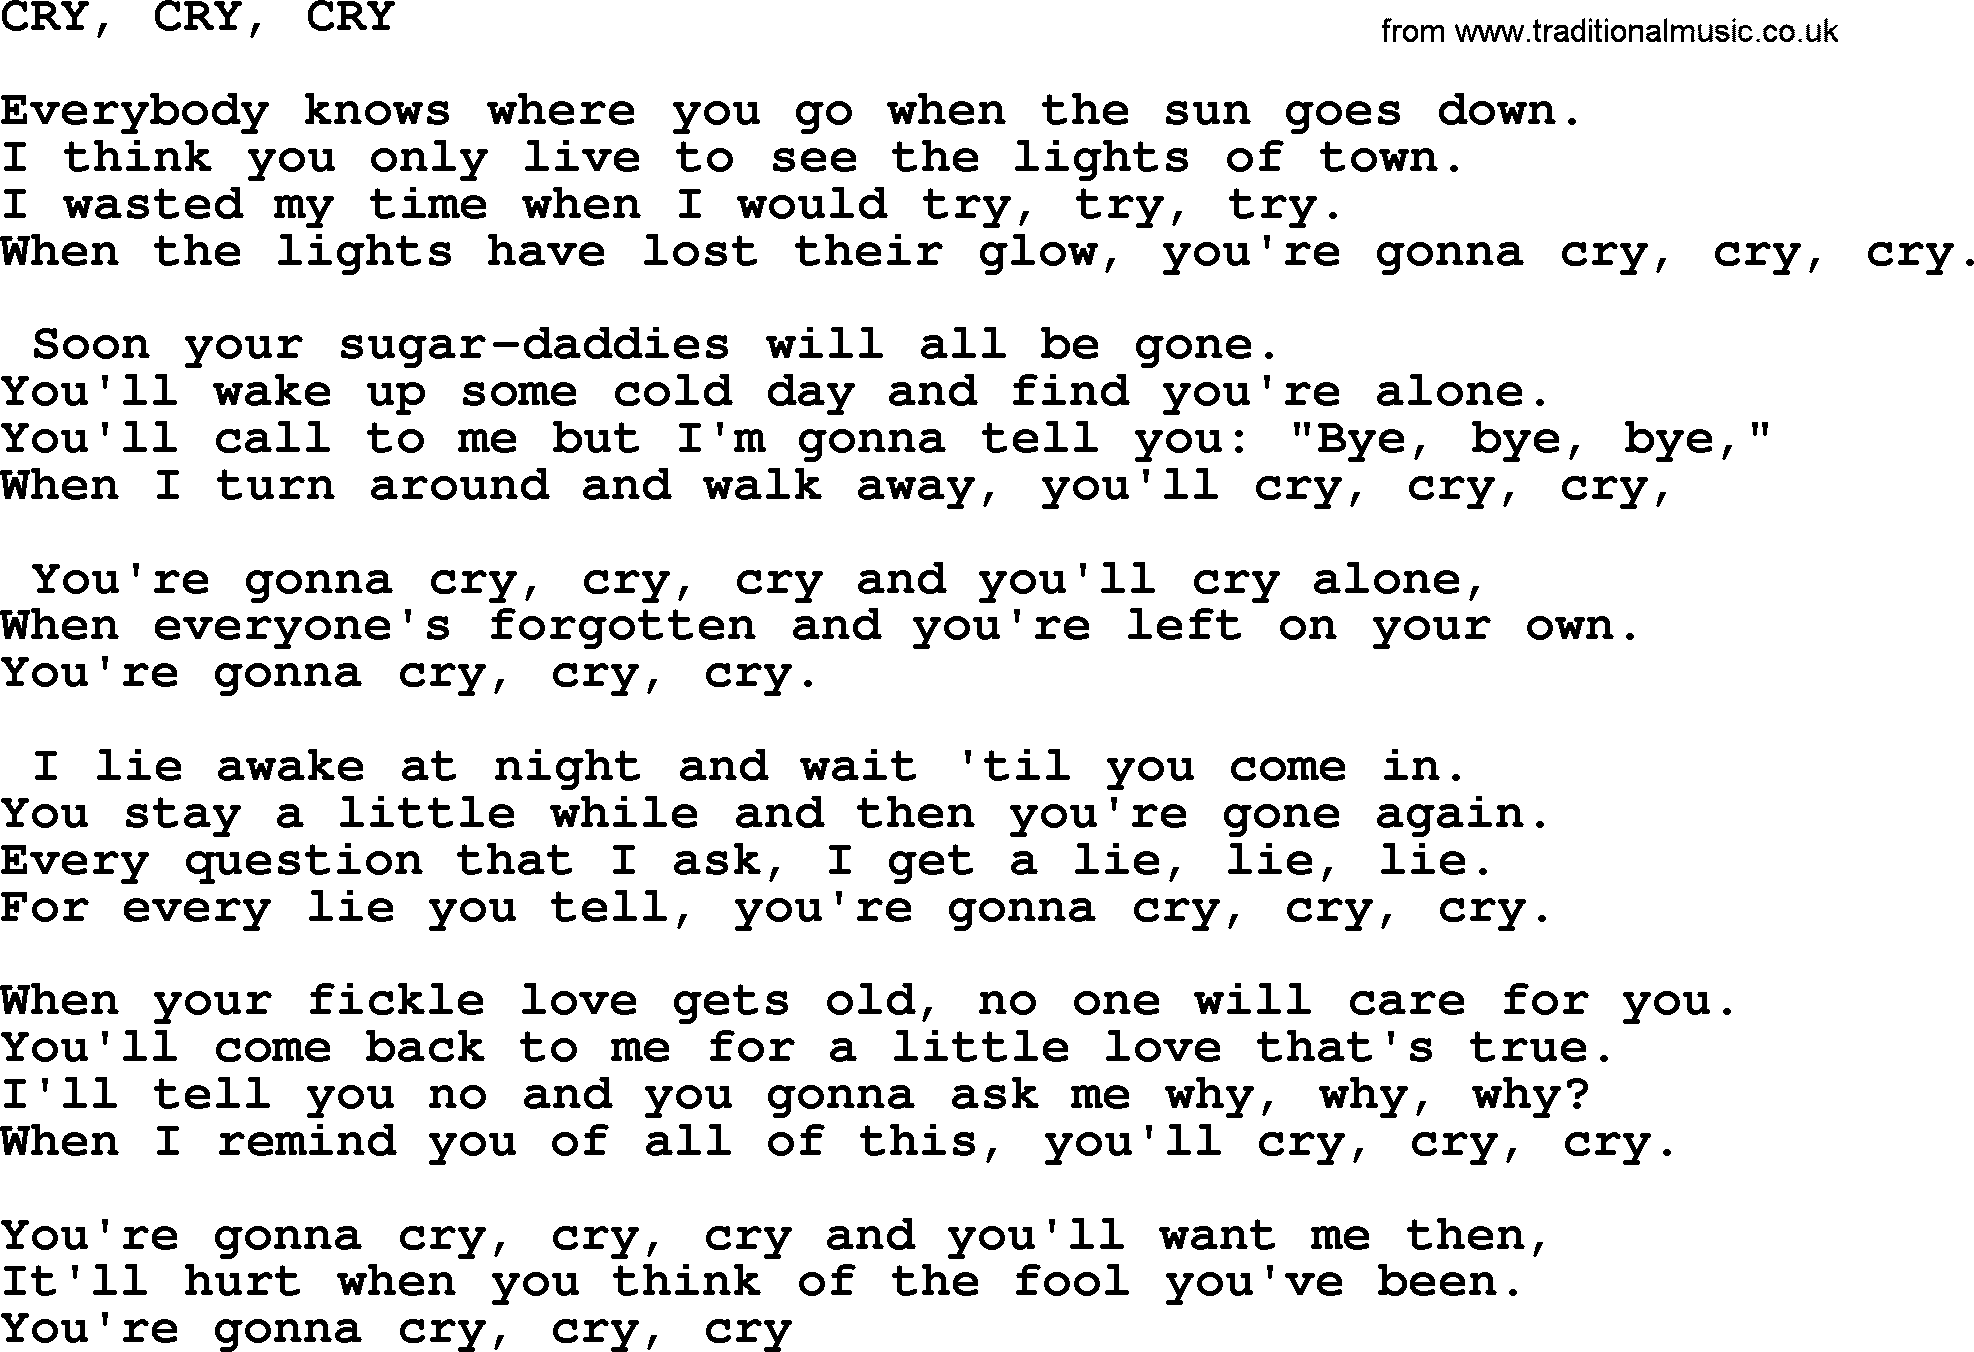 Johnny Cash Song Cry Cry Cry Lyrics